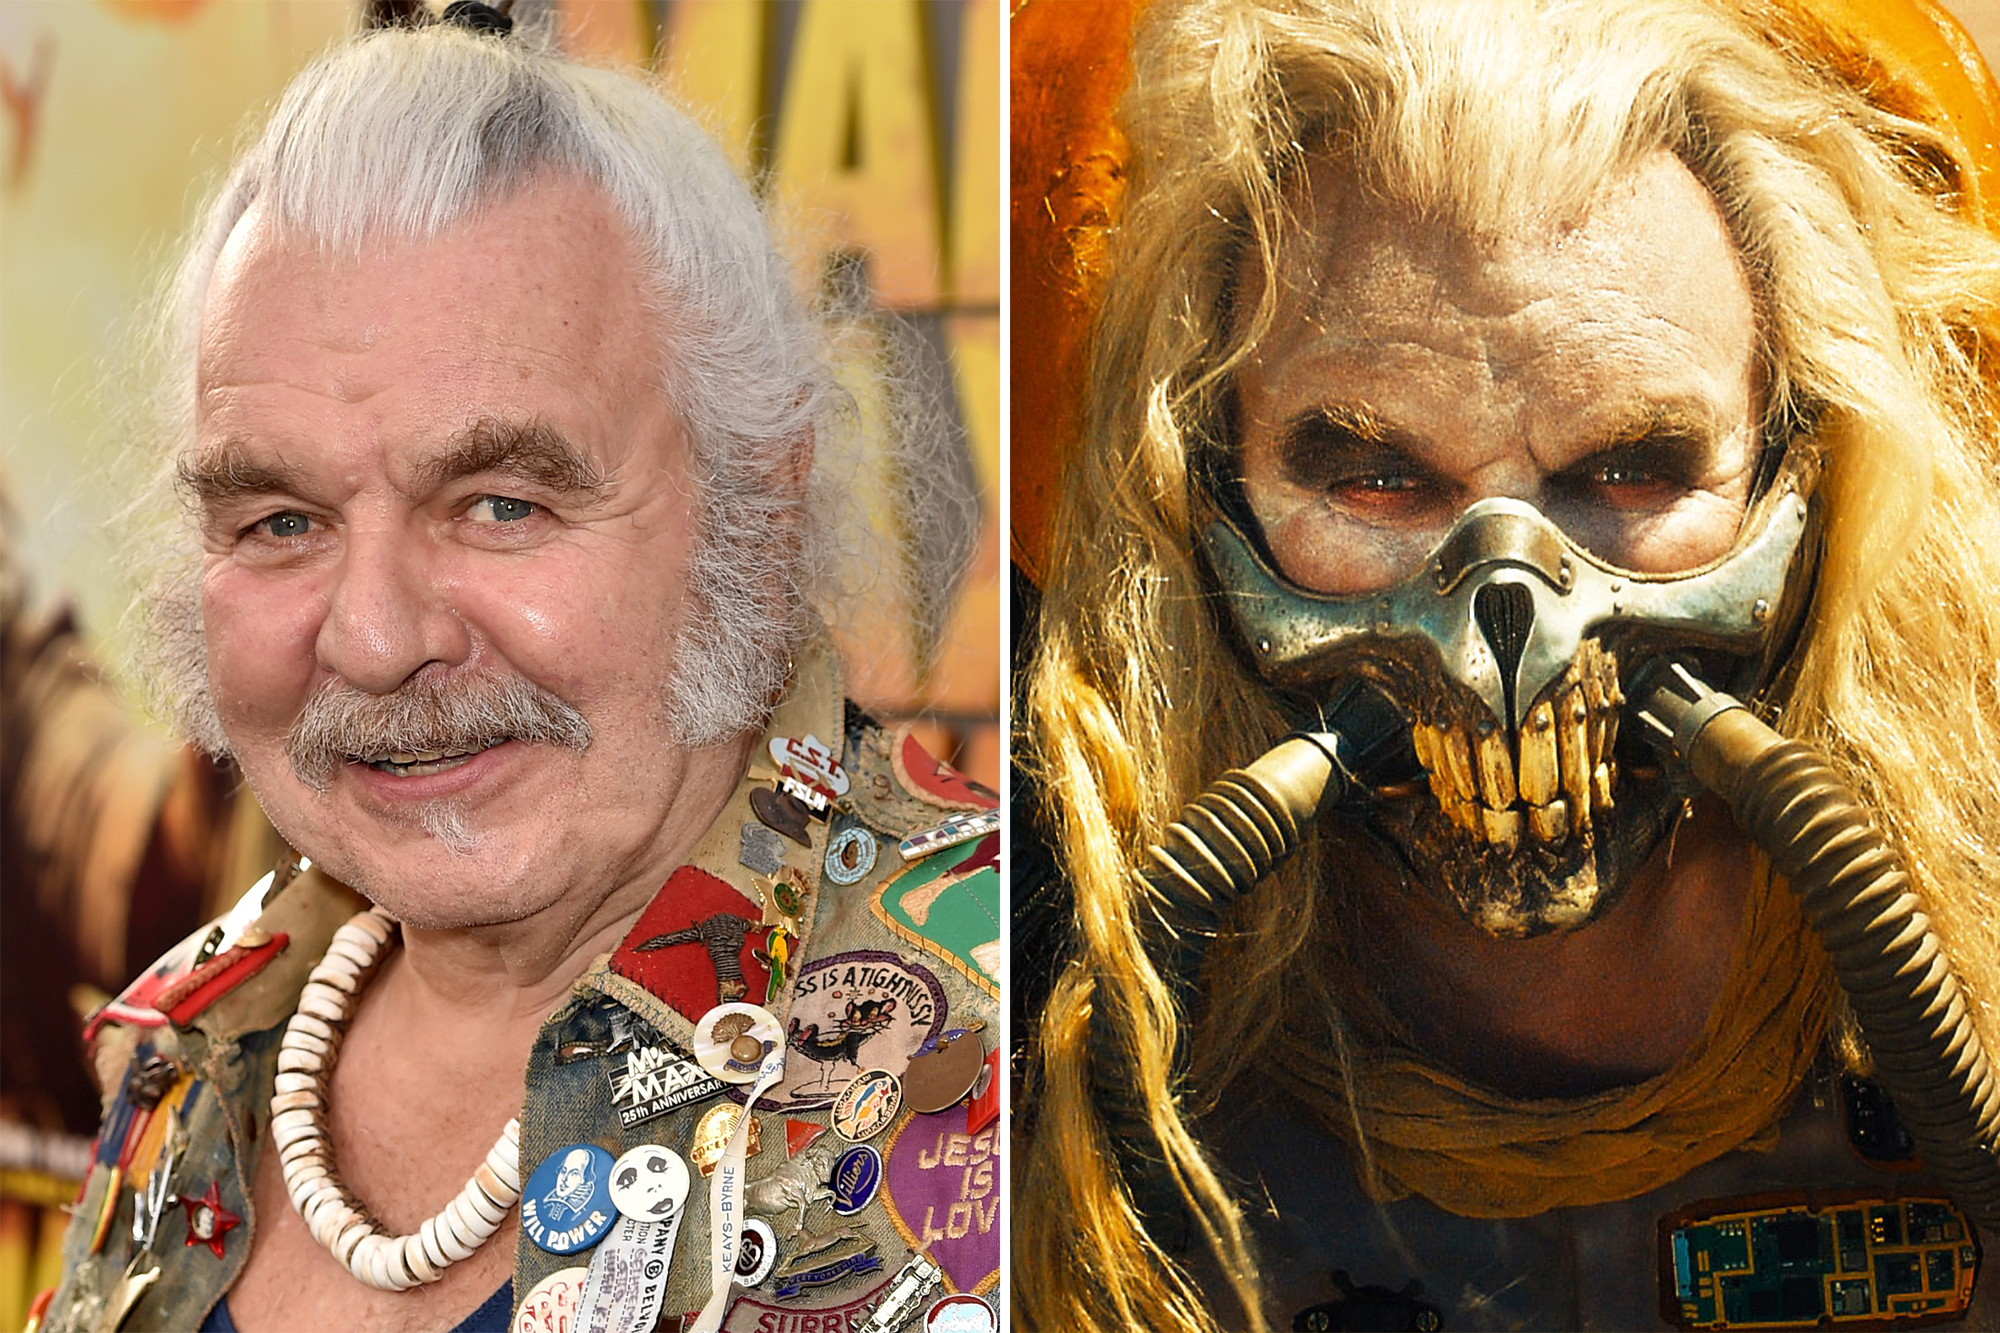 Hugh Keays-Byrne, two-time 'Mad Max' villain, dead at 73